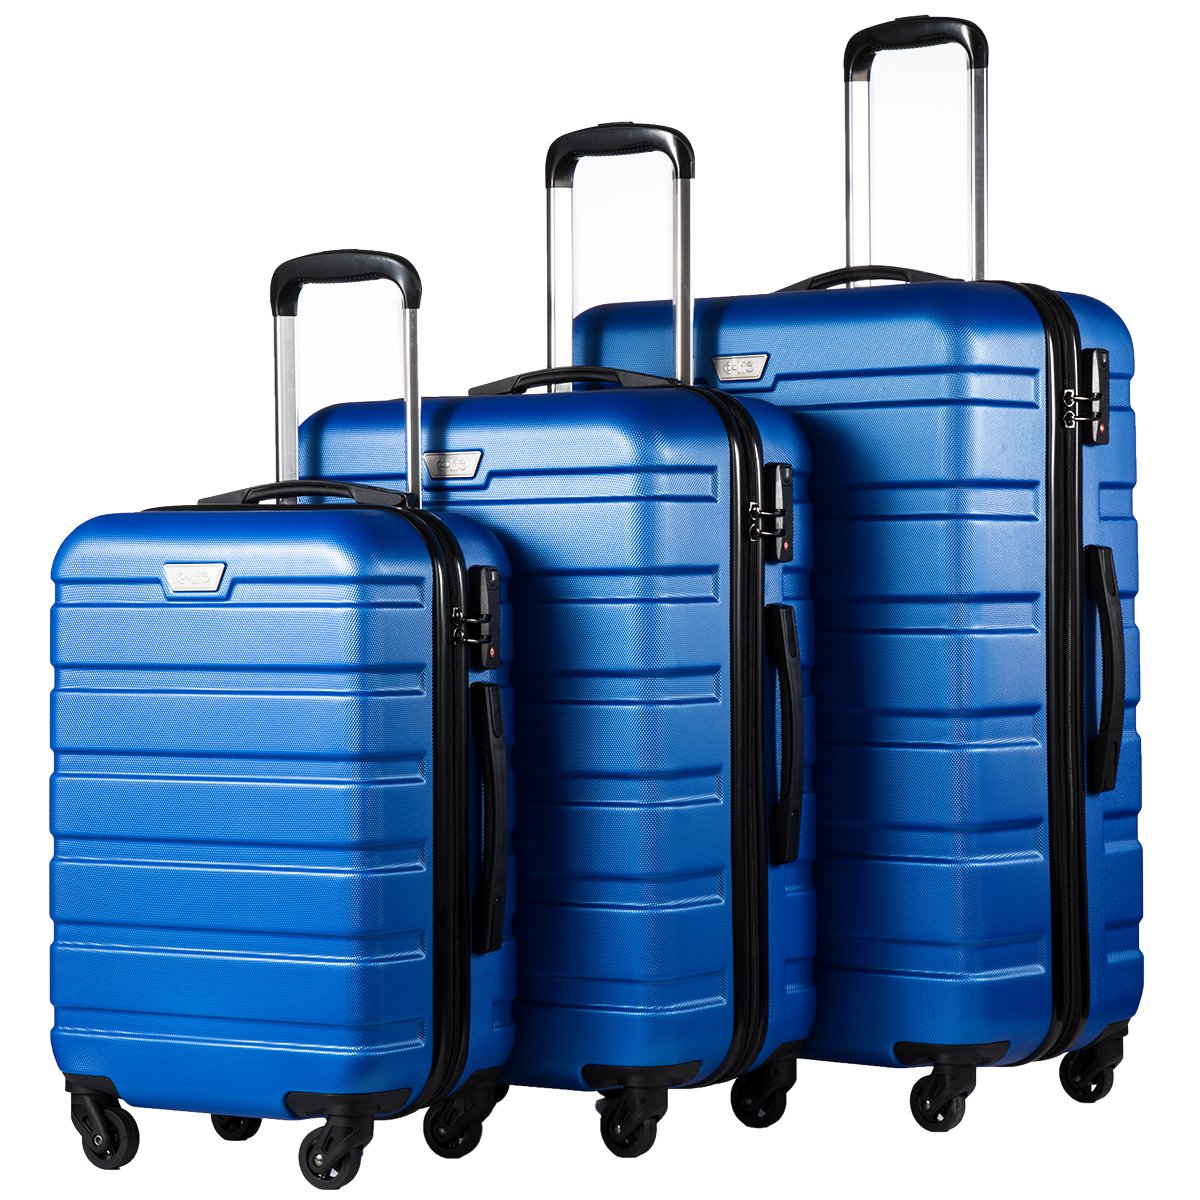 Coolife Luggage 3 Piece Set Spinner Trolley Suitcase Hard Shell Lightweight Carried On Trunk 20inch 24inch 28inch(blue) by Coolife